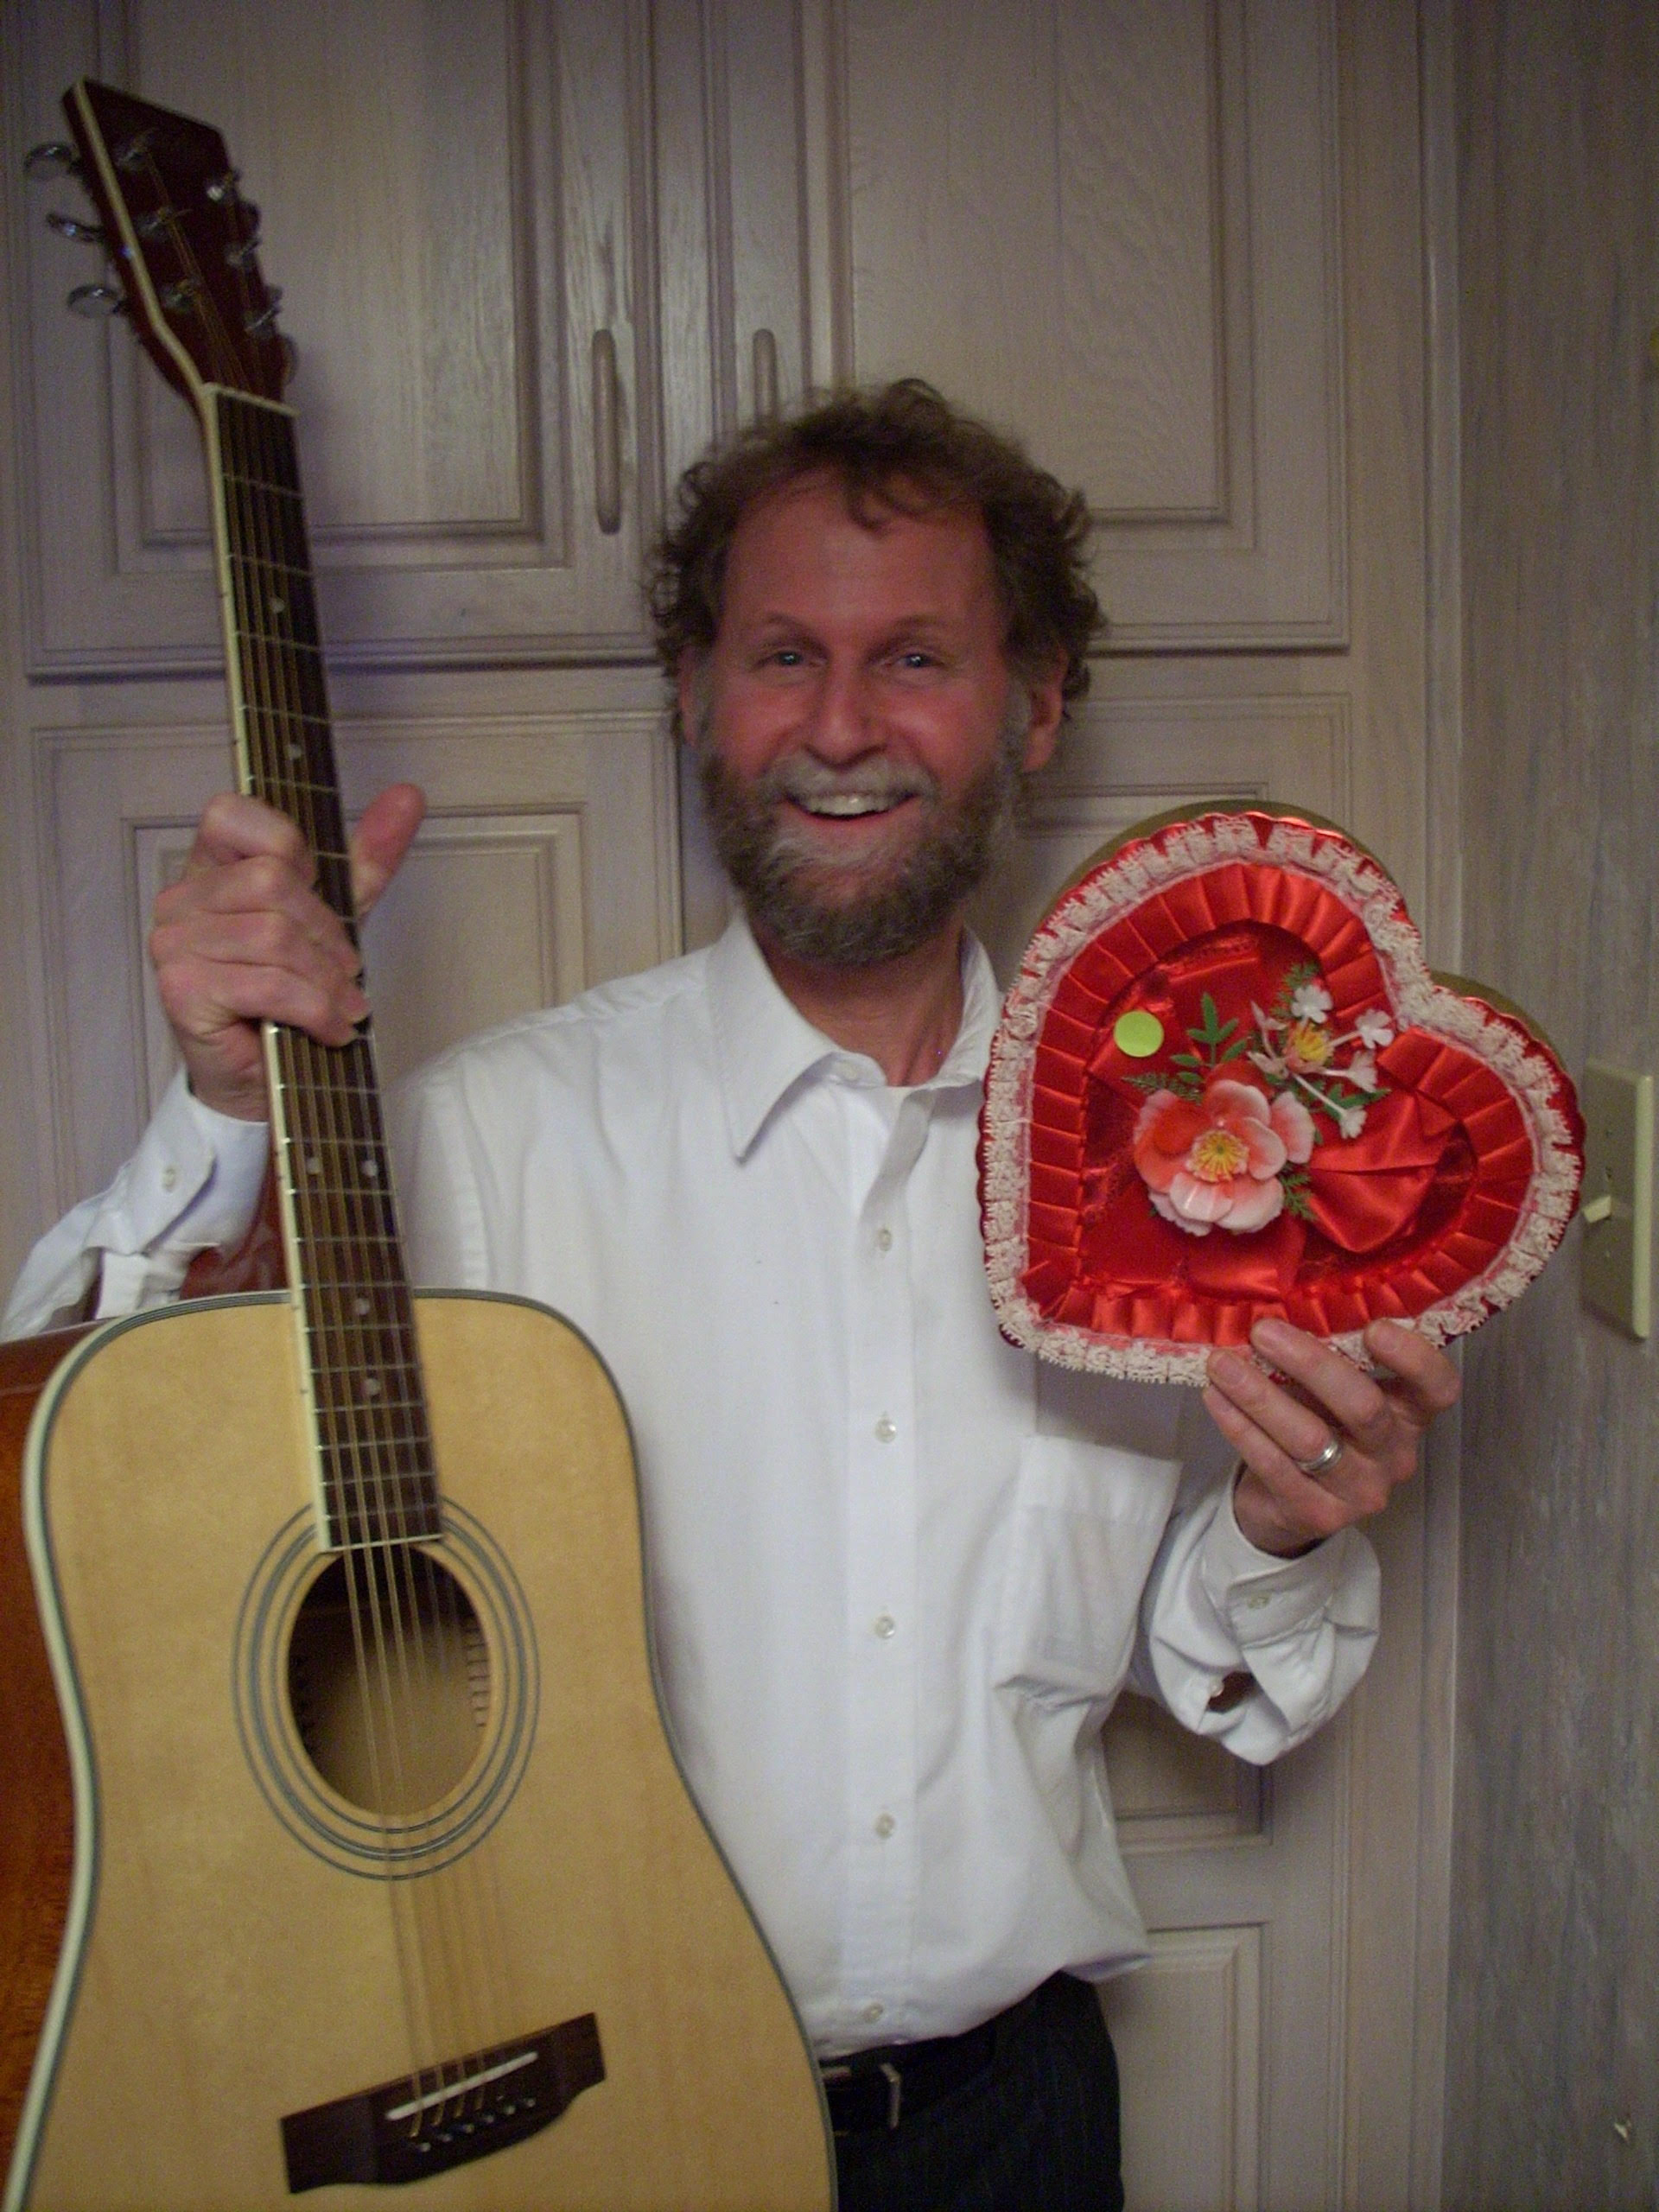 Bill Cohen with guitar and valentine